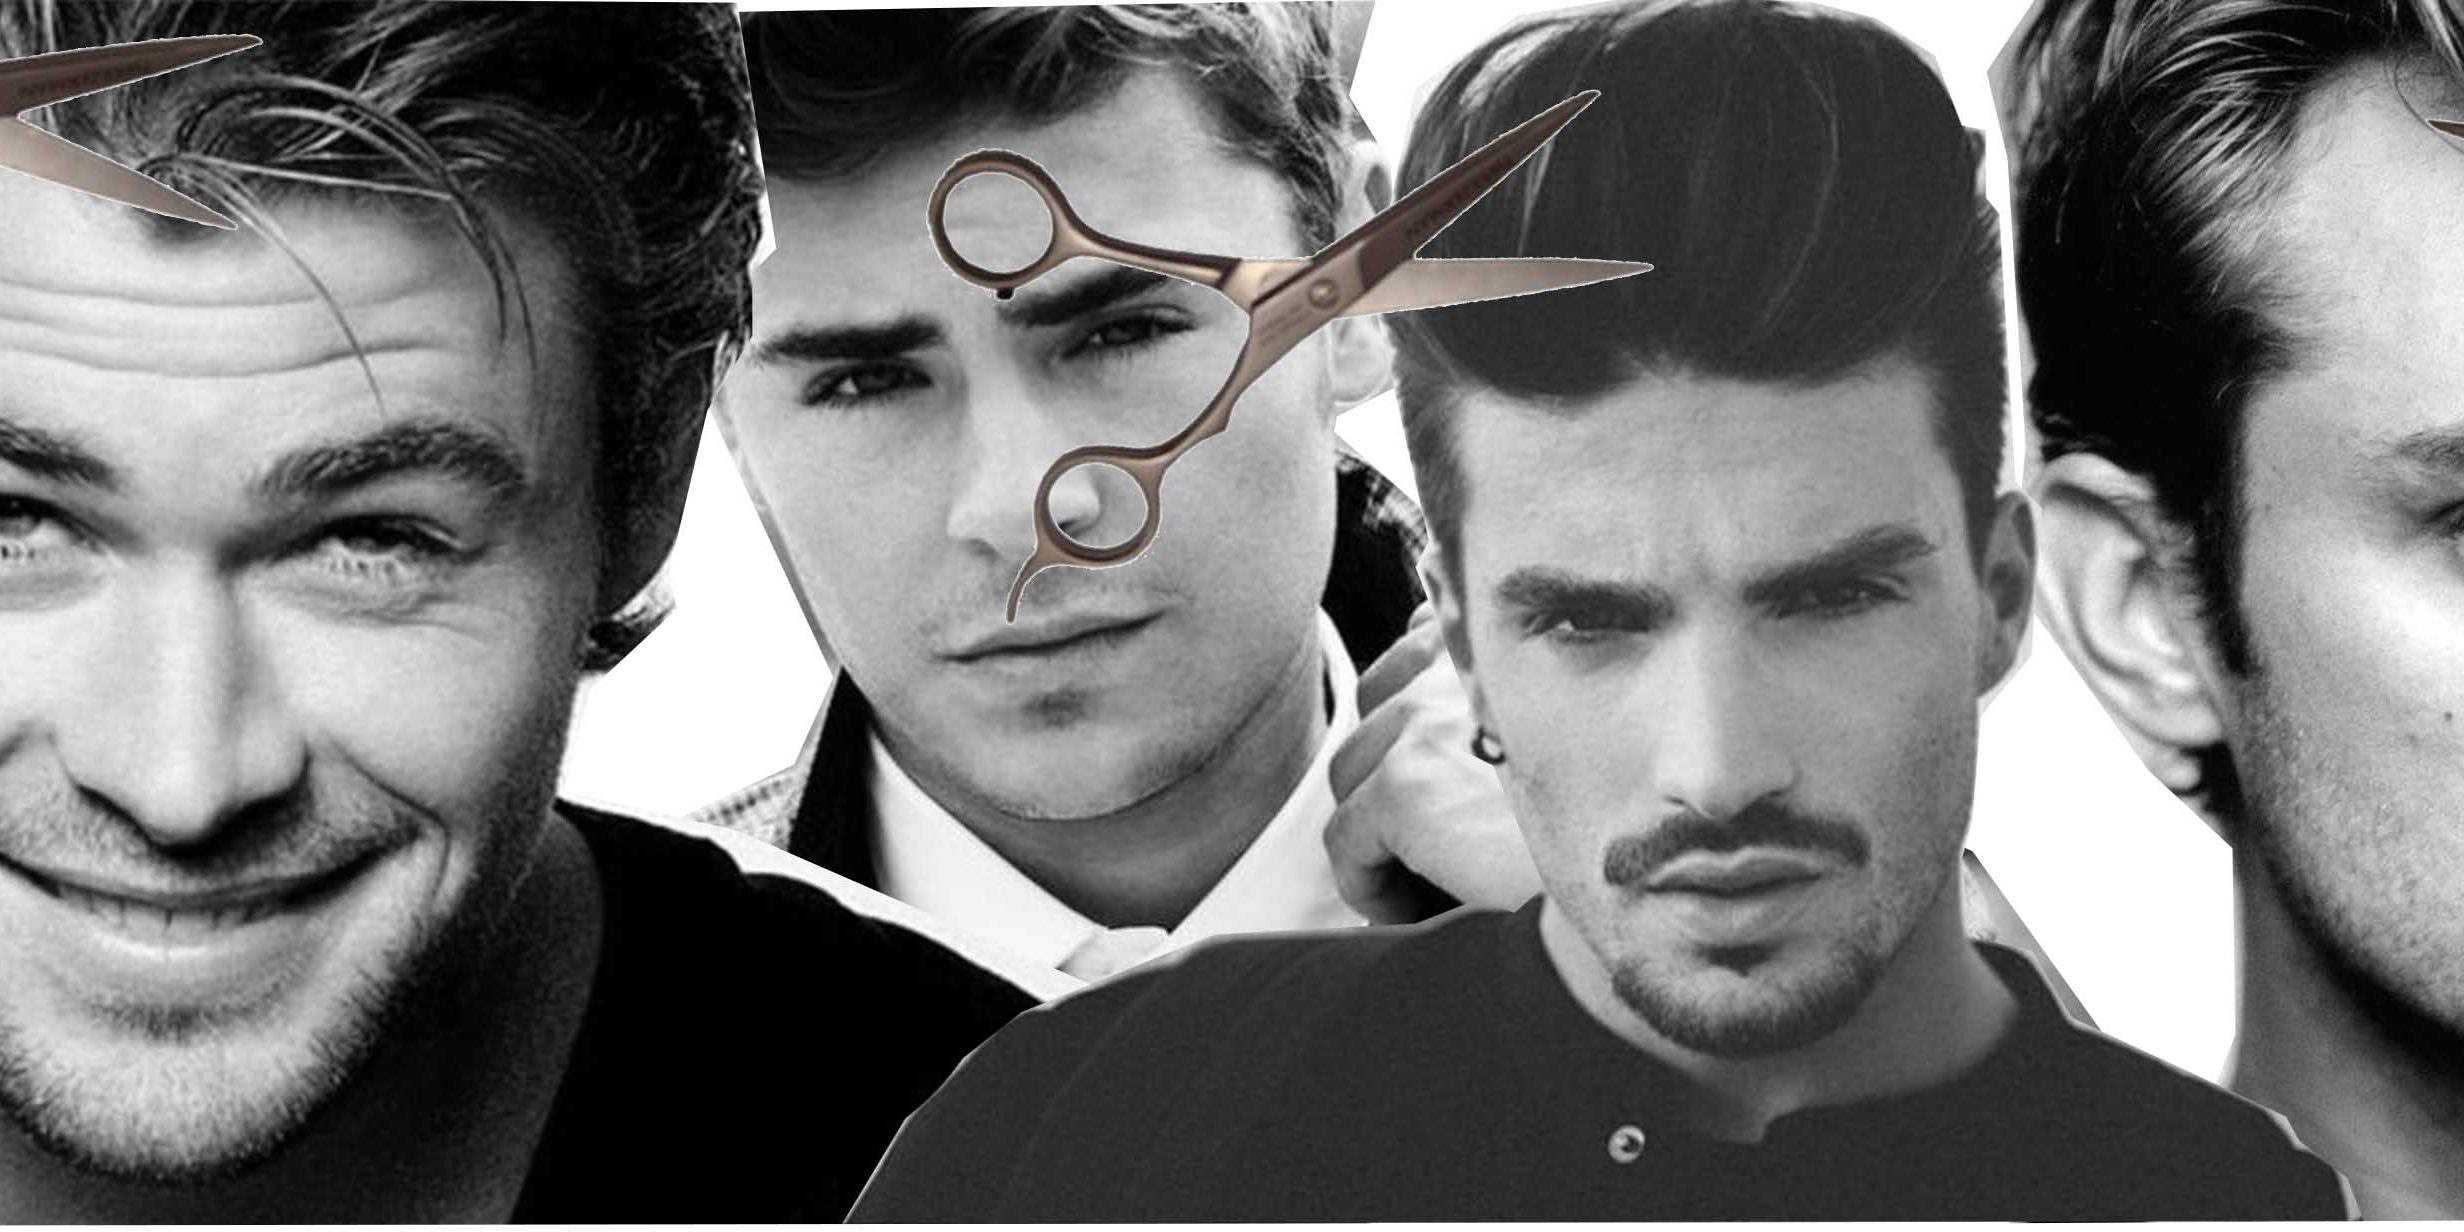 guide to hairstyles for men - mdv style | street style magazine